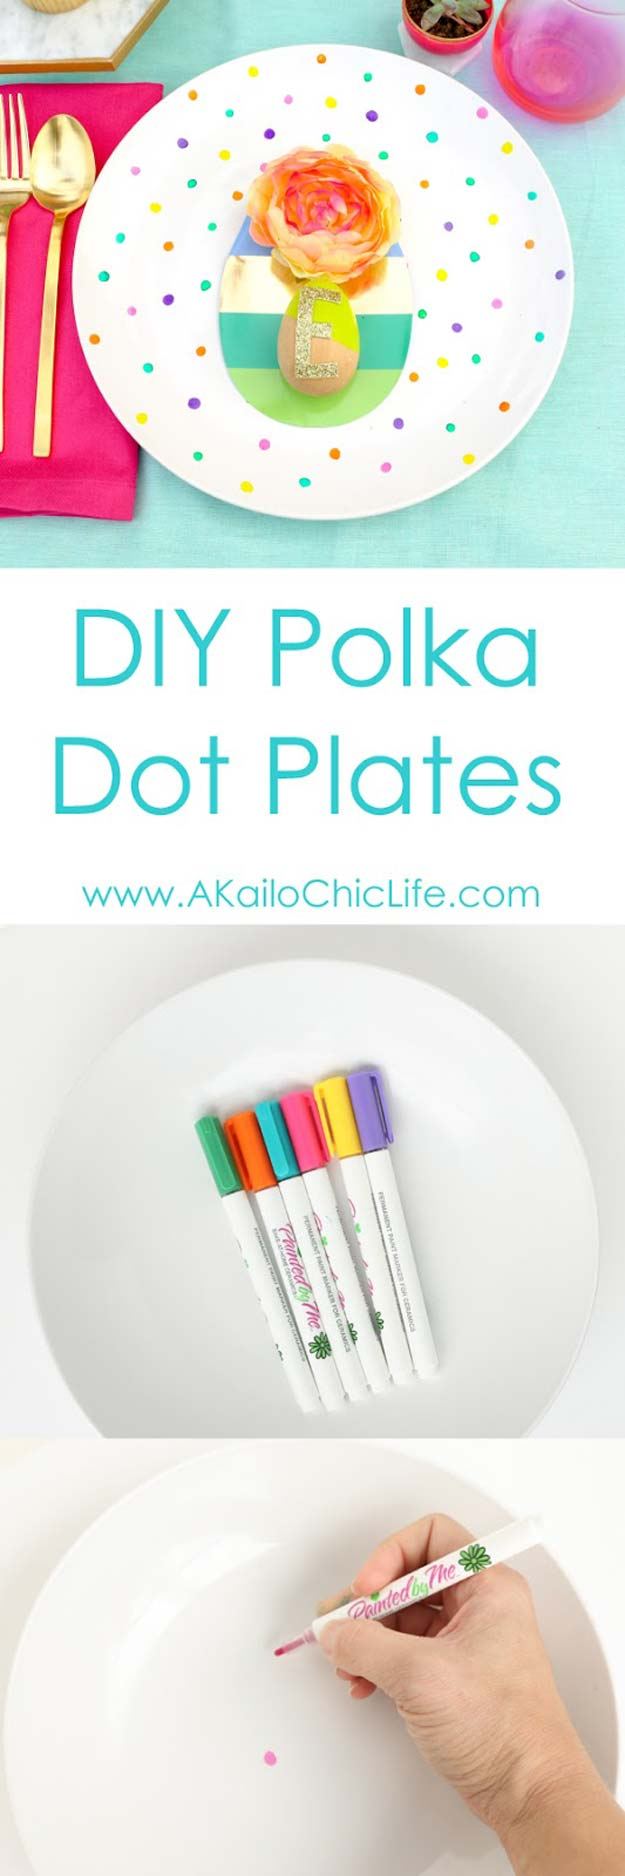 DIY Polka Dot Crafts and Projects - DIY Polka Dot Plates - Cool Clothes, Room and Home Decor, Wall Art, Mason Jars and Party Ideas, Canvas, Fabric and Paint Project Tutorials - Fun Craft Ideas for Teens, Kids and Adults Make Awesome DIY Gifts